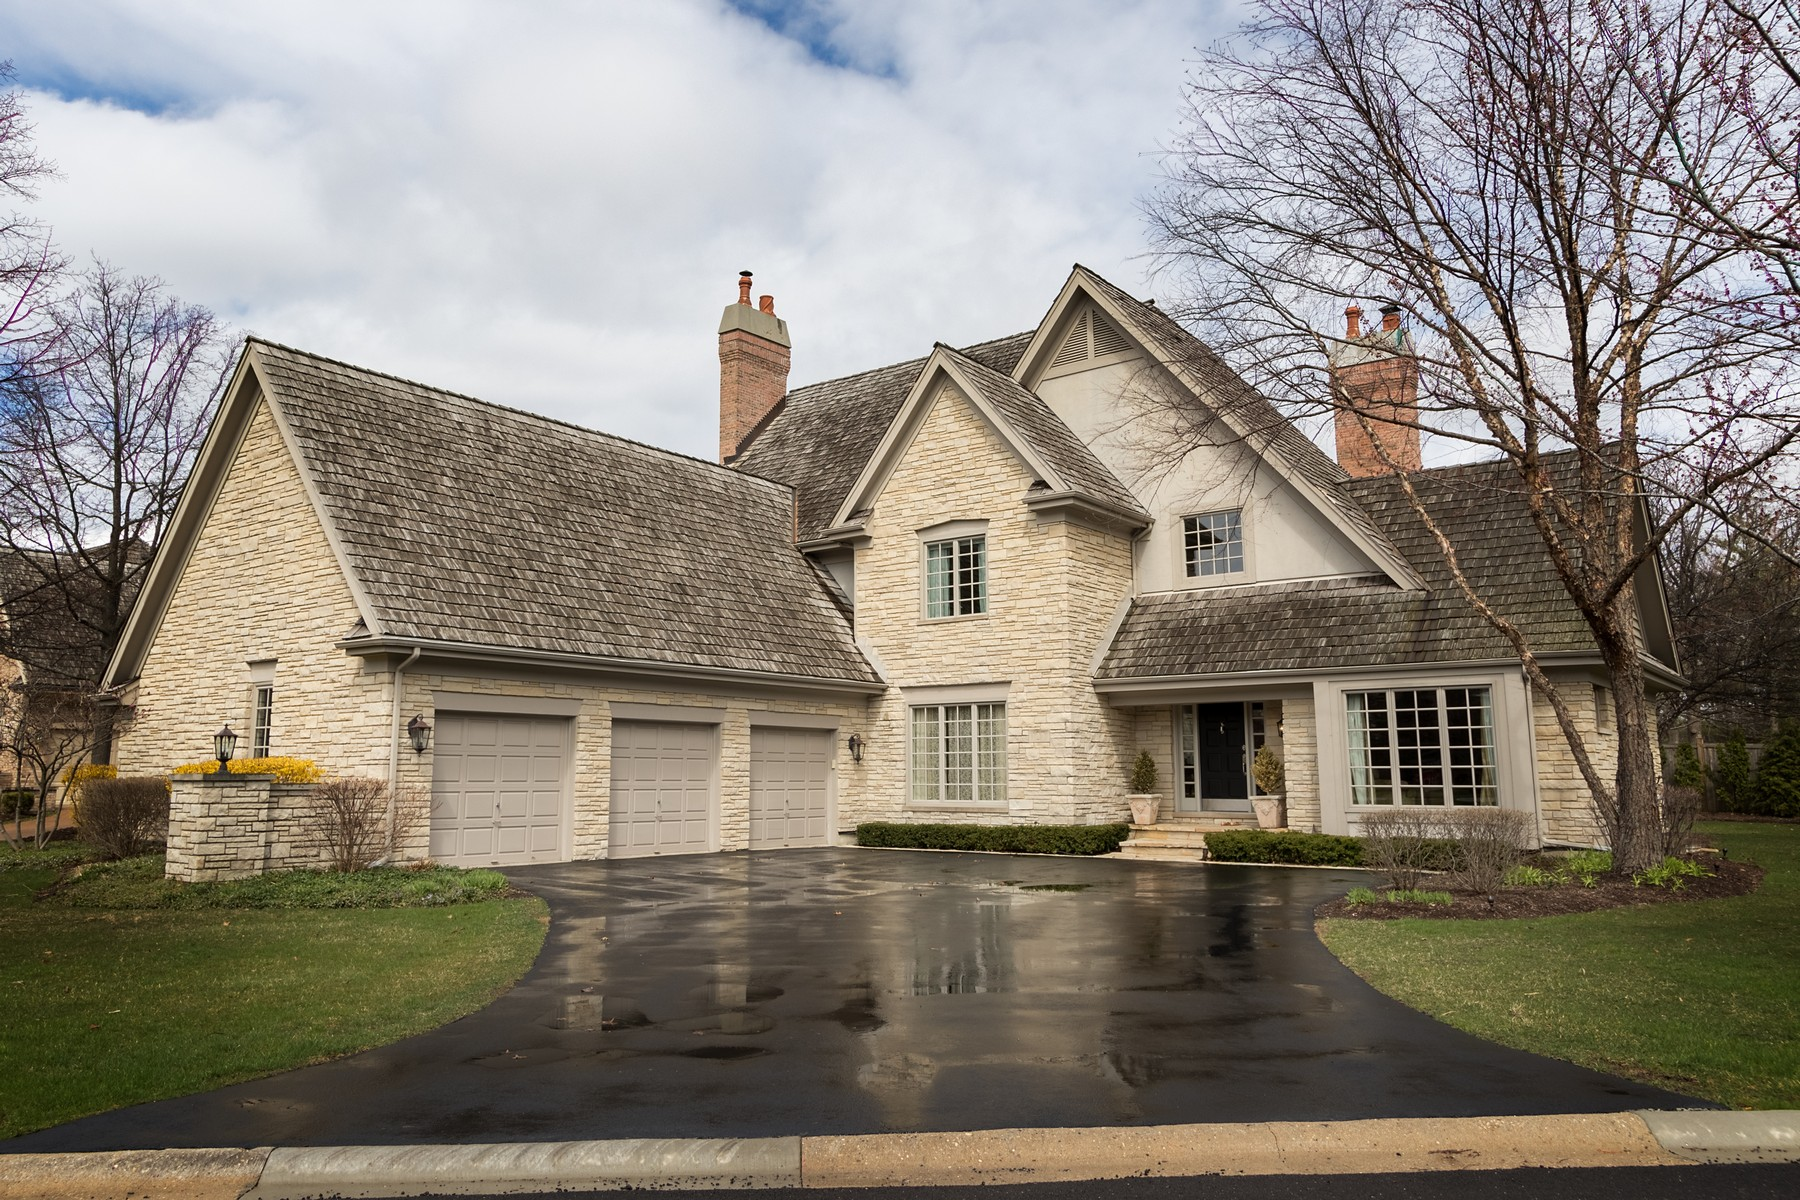 Single Family Home for Sale at Meticulously Maintained Home 107 Lakeside Court North Barrington, Illinois, 60010 United States